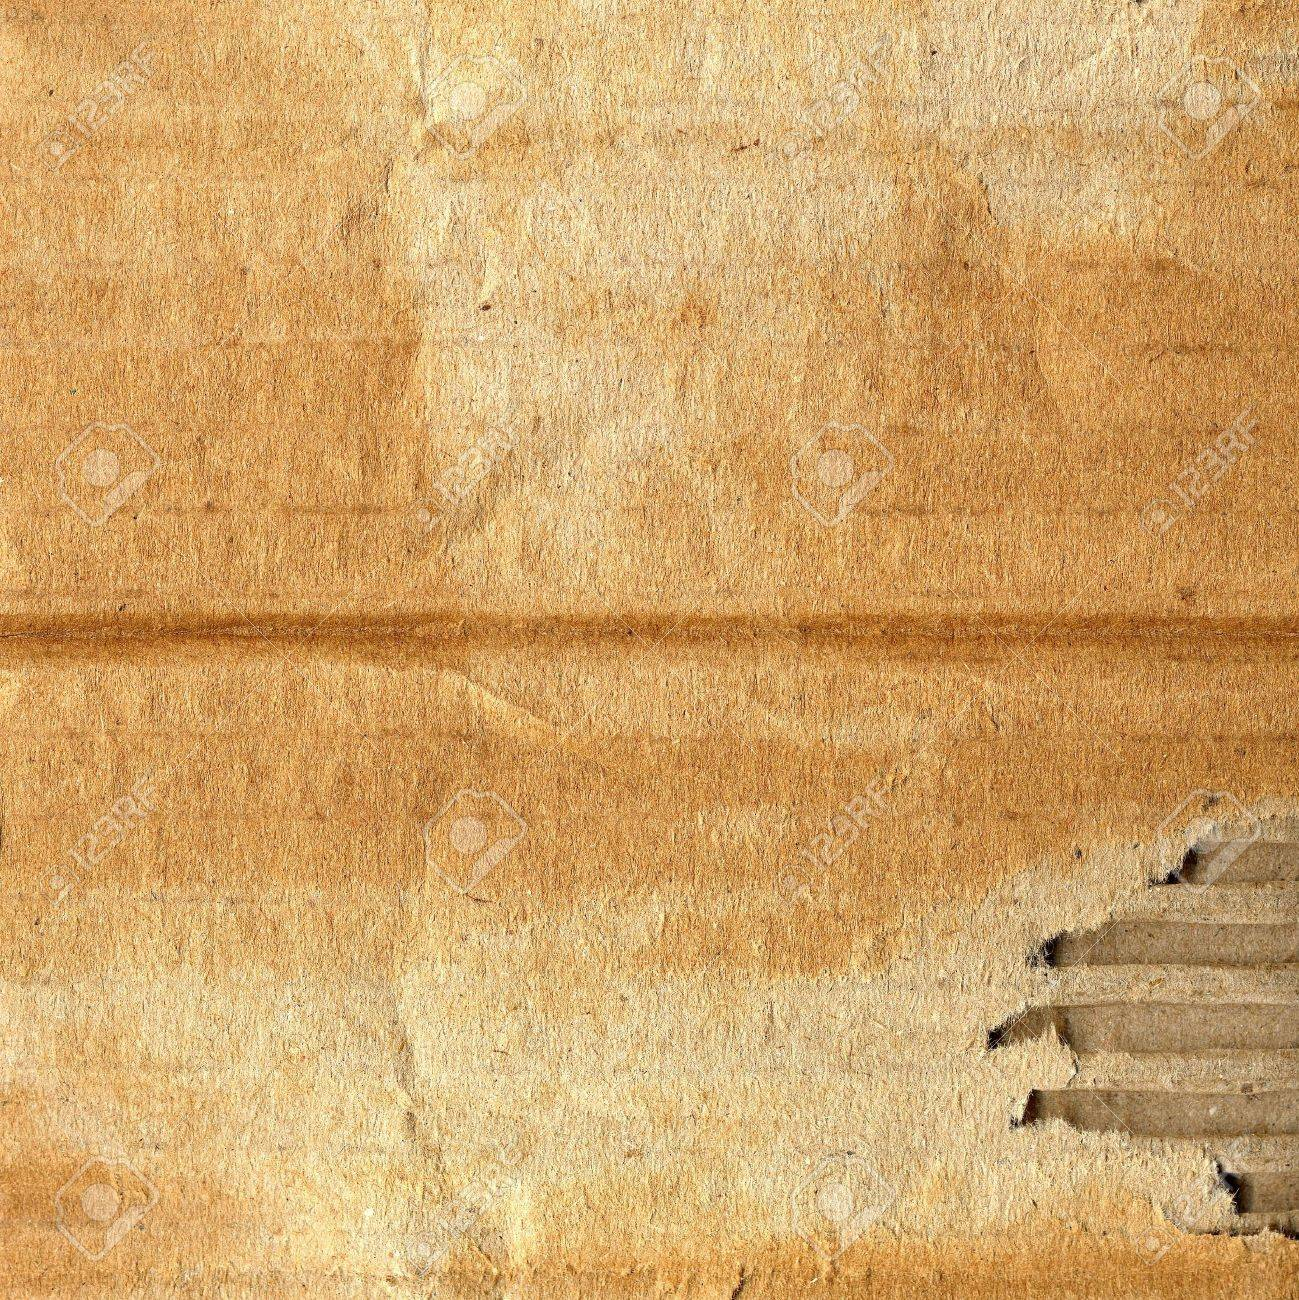 Old grunge corrugated cardboard useful as a background Stock Photo - 6044477